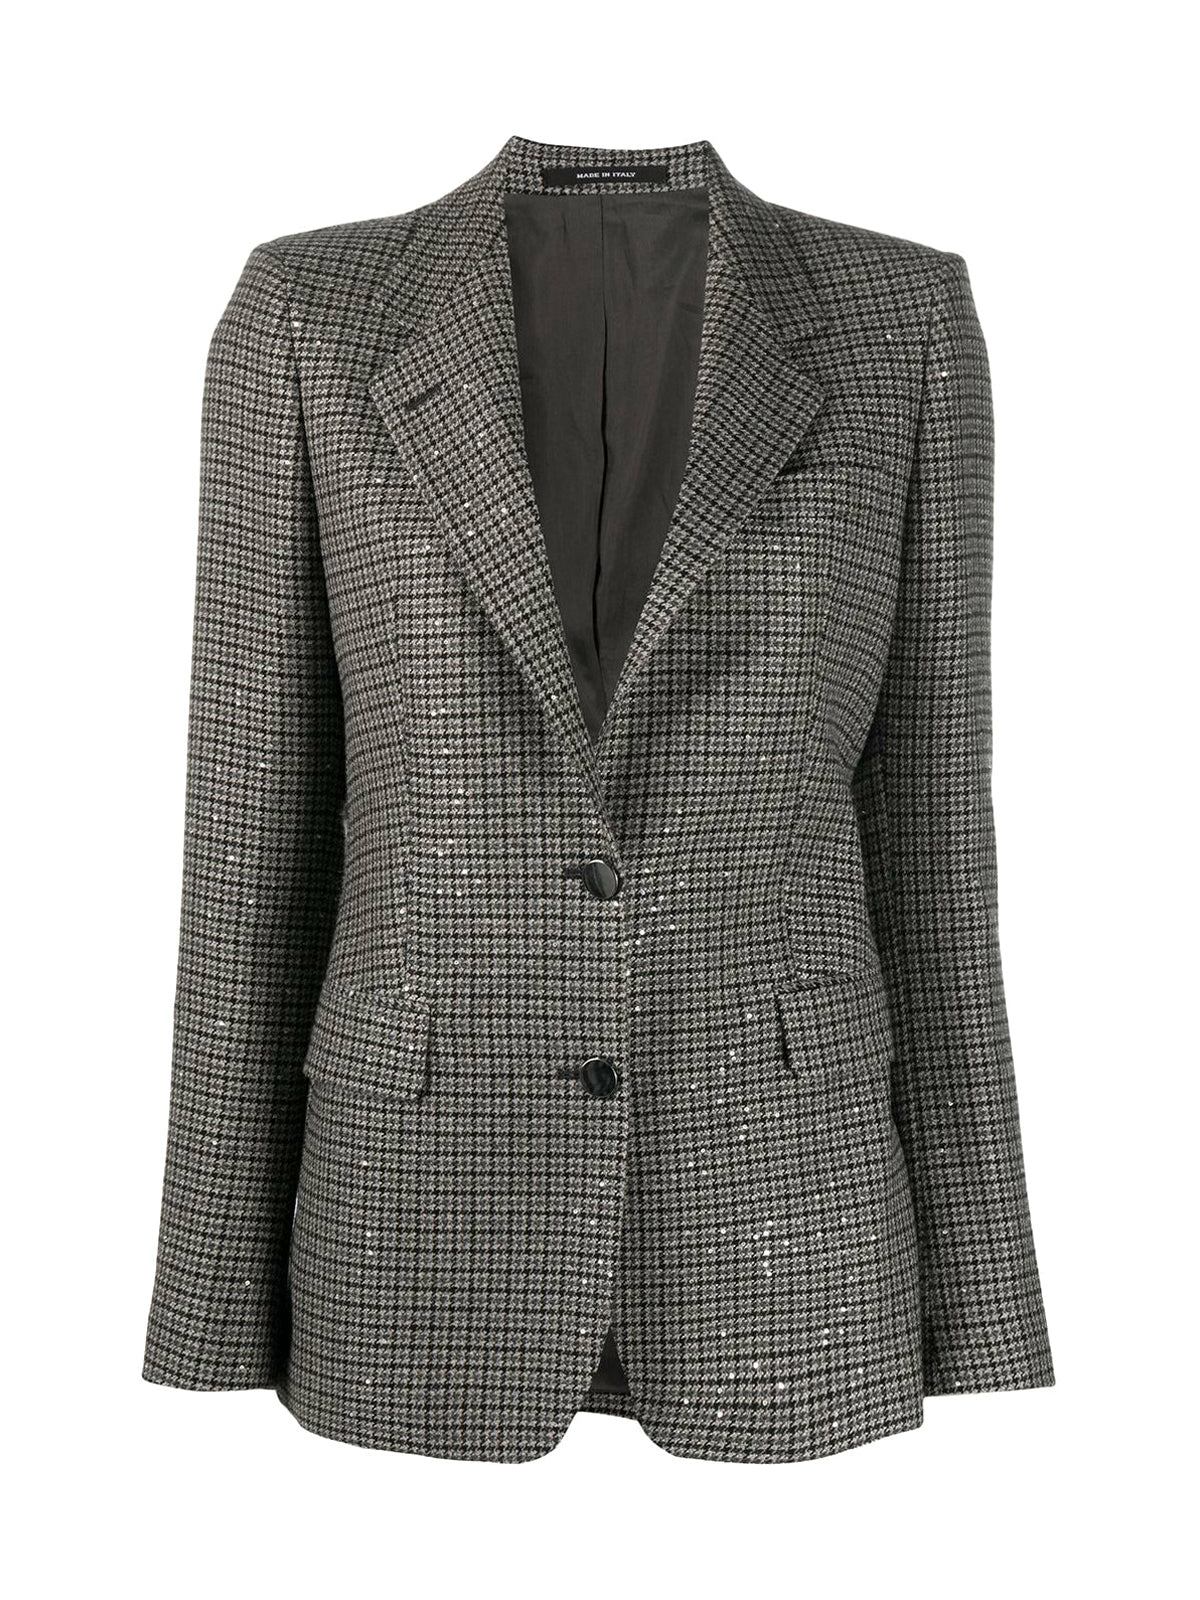 long-sleeved check pattern blazer